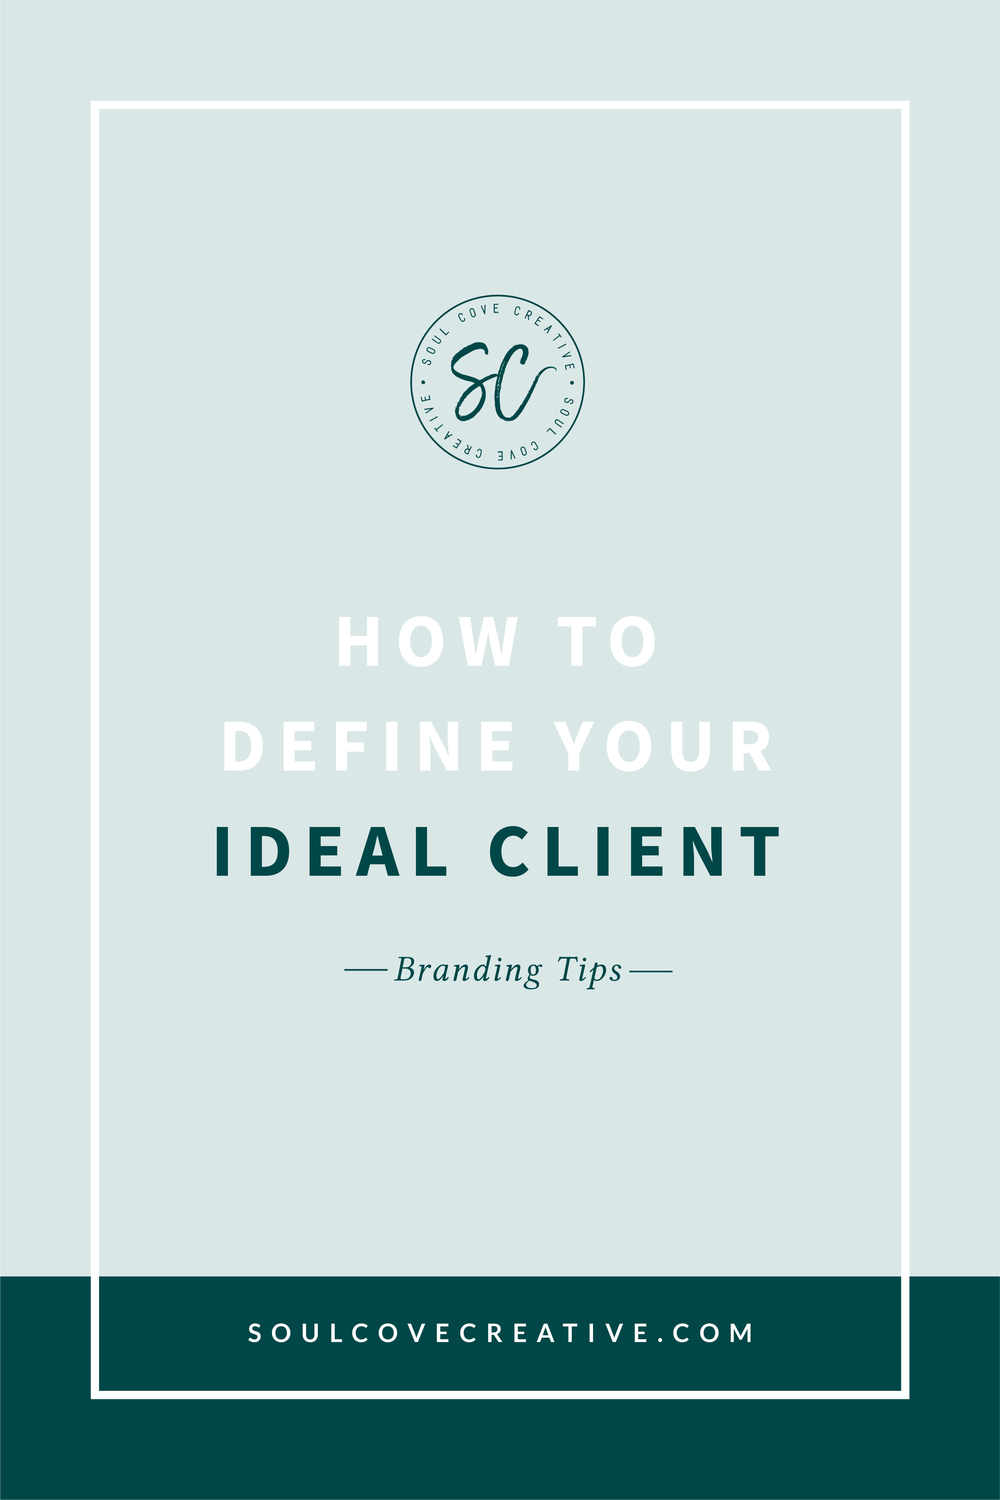 How to Define your Ideal Client